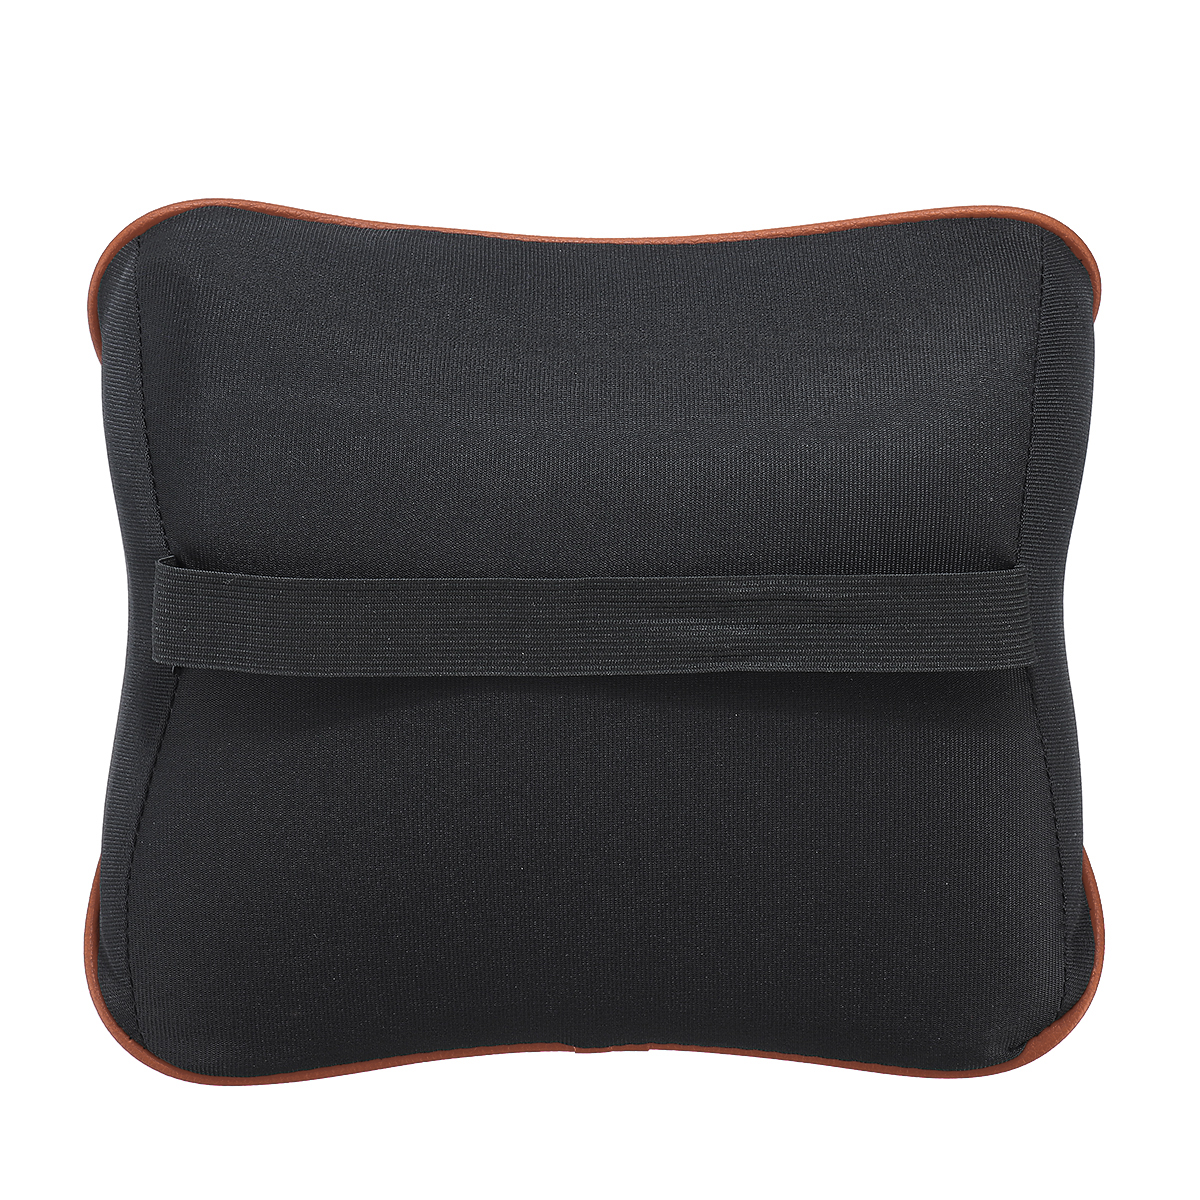 Car Seat Headrest Pad Memory Neck Pillow Support Cushion Foam Washable